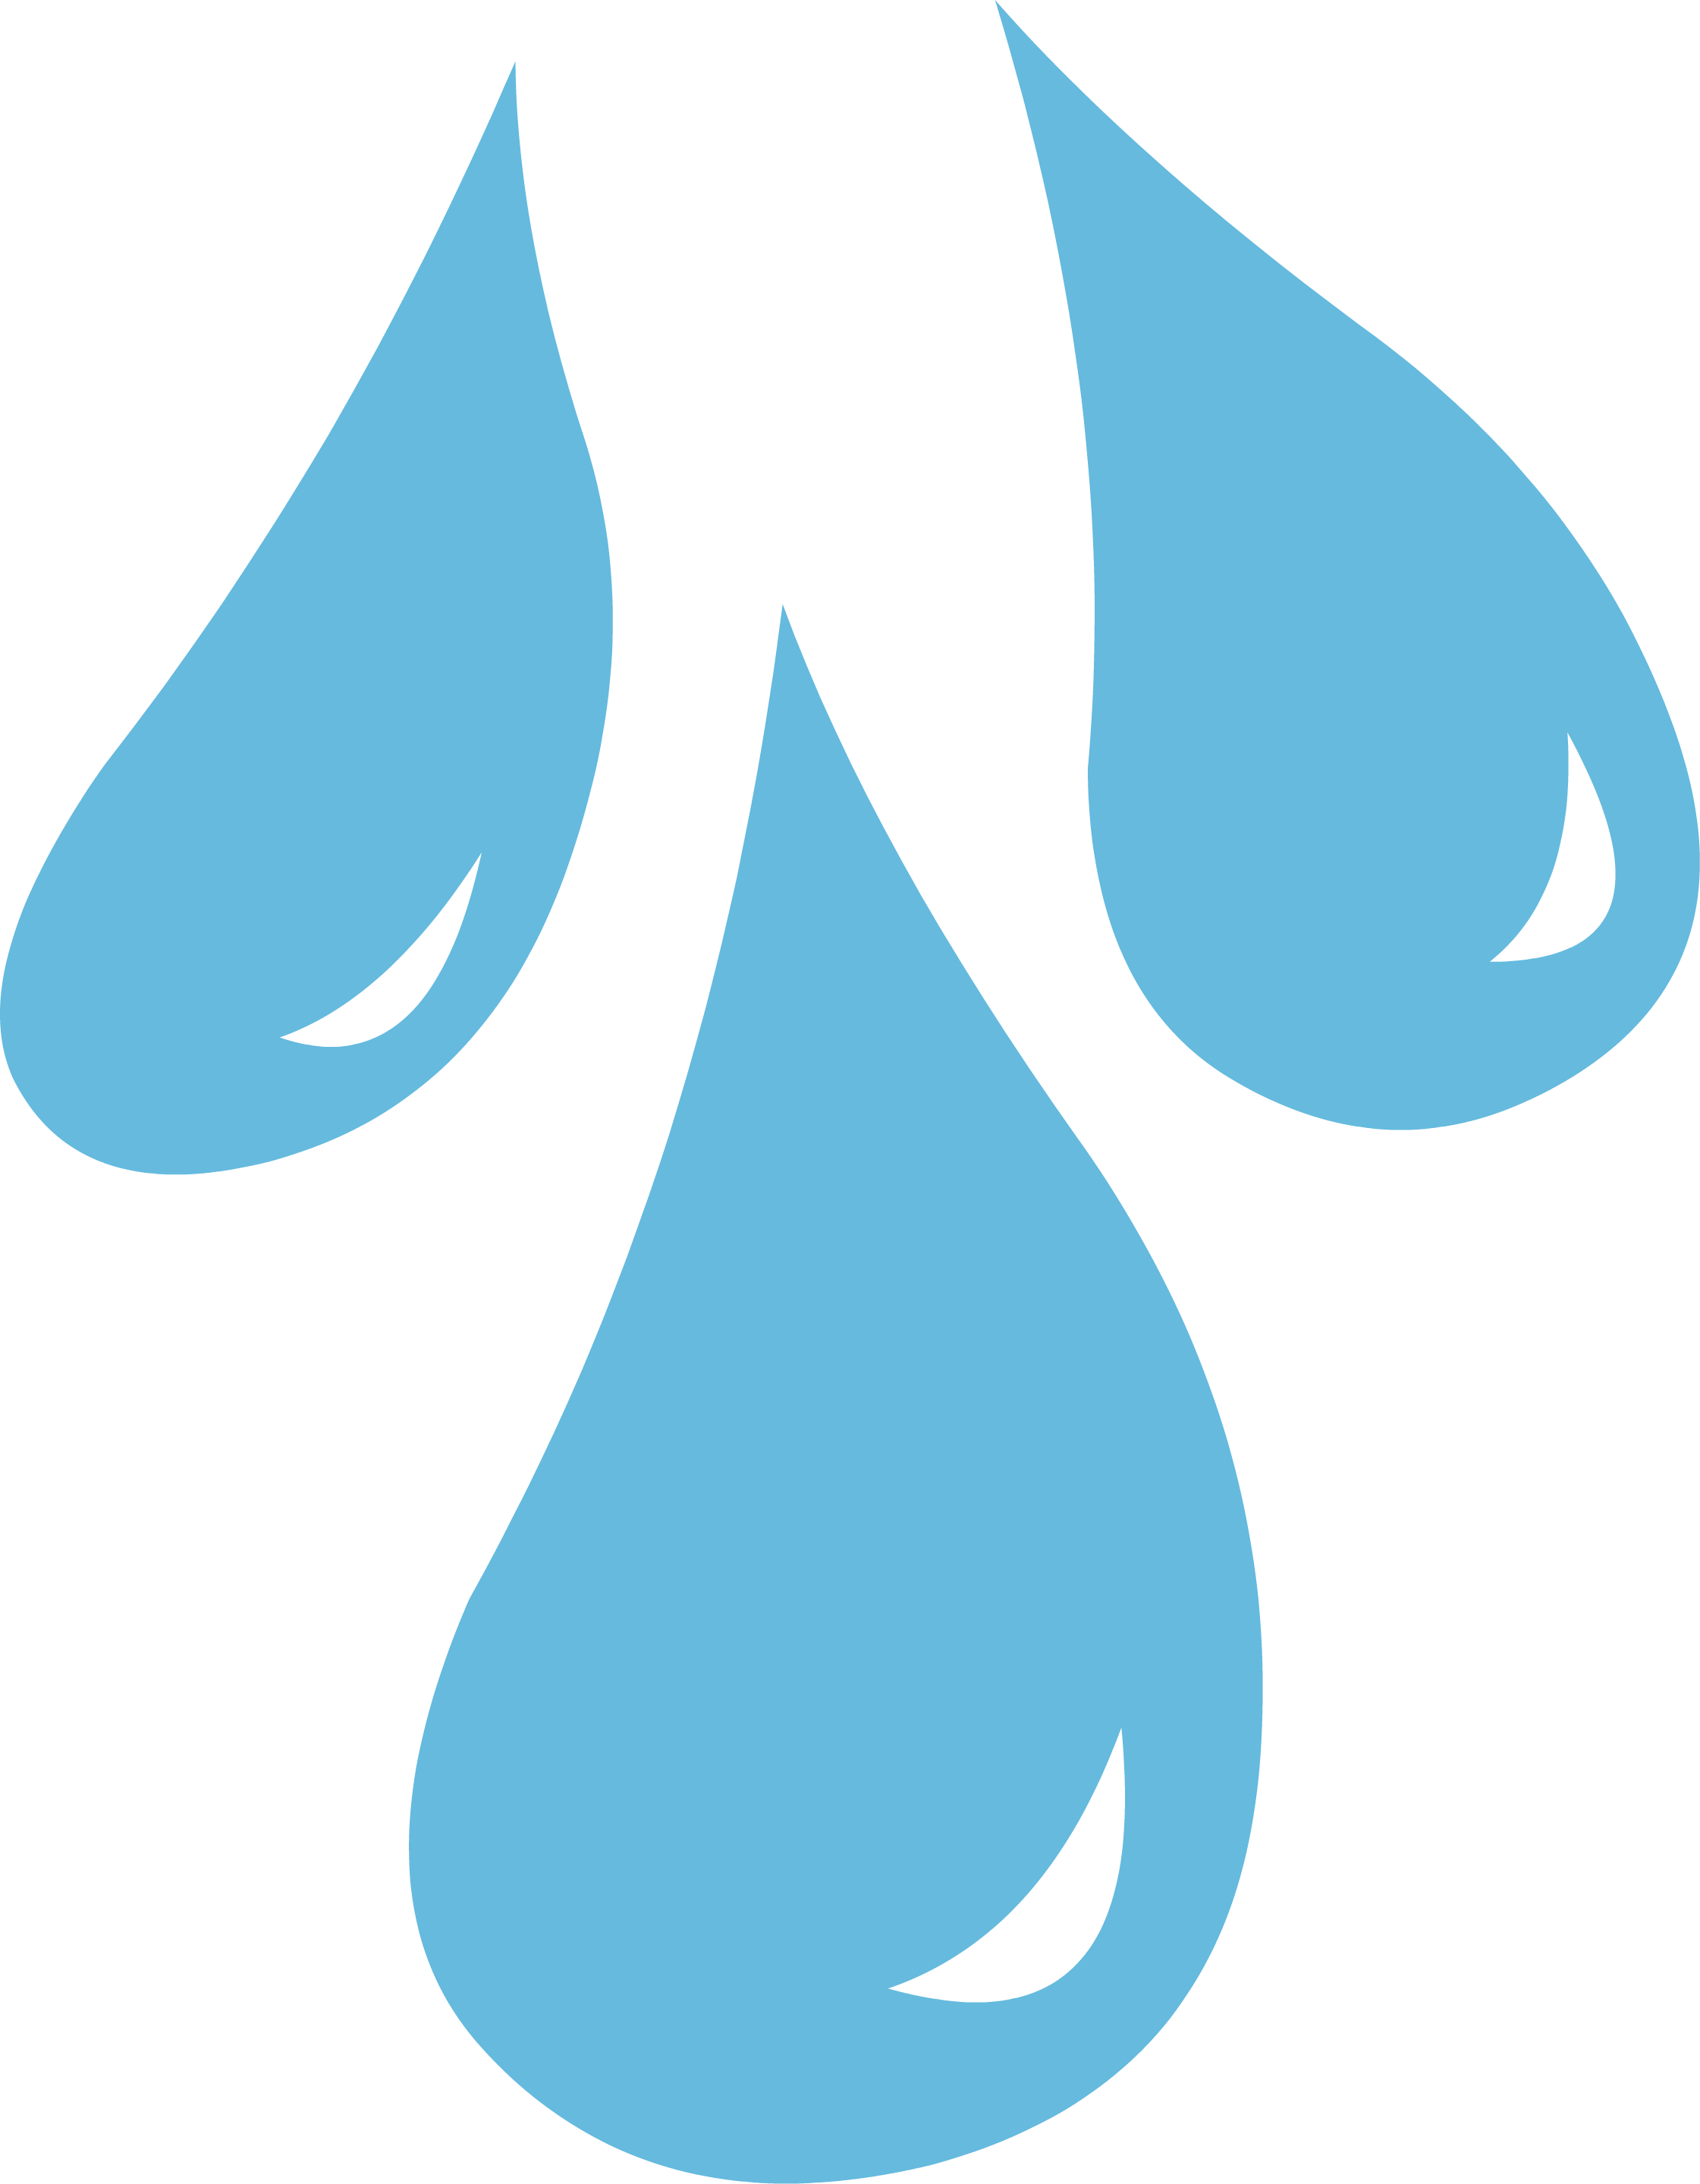 raindrop coloring page clipart best